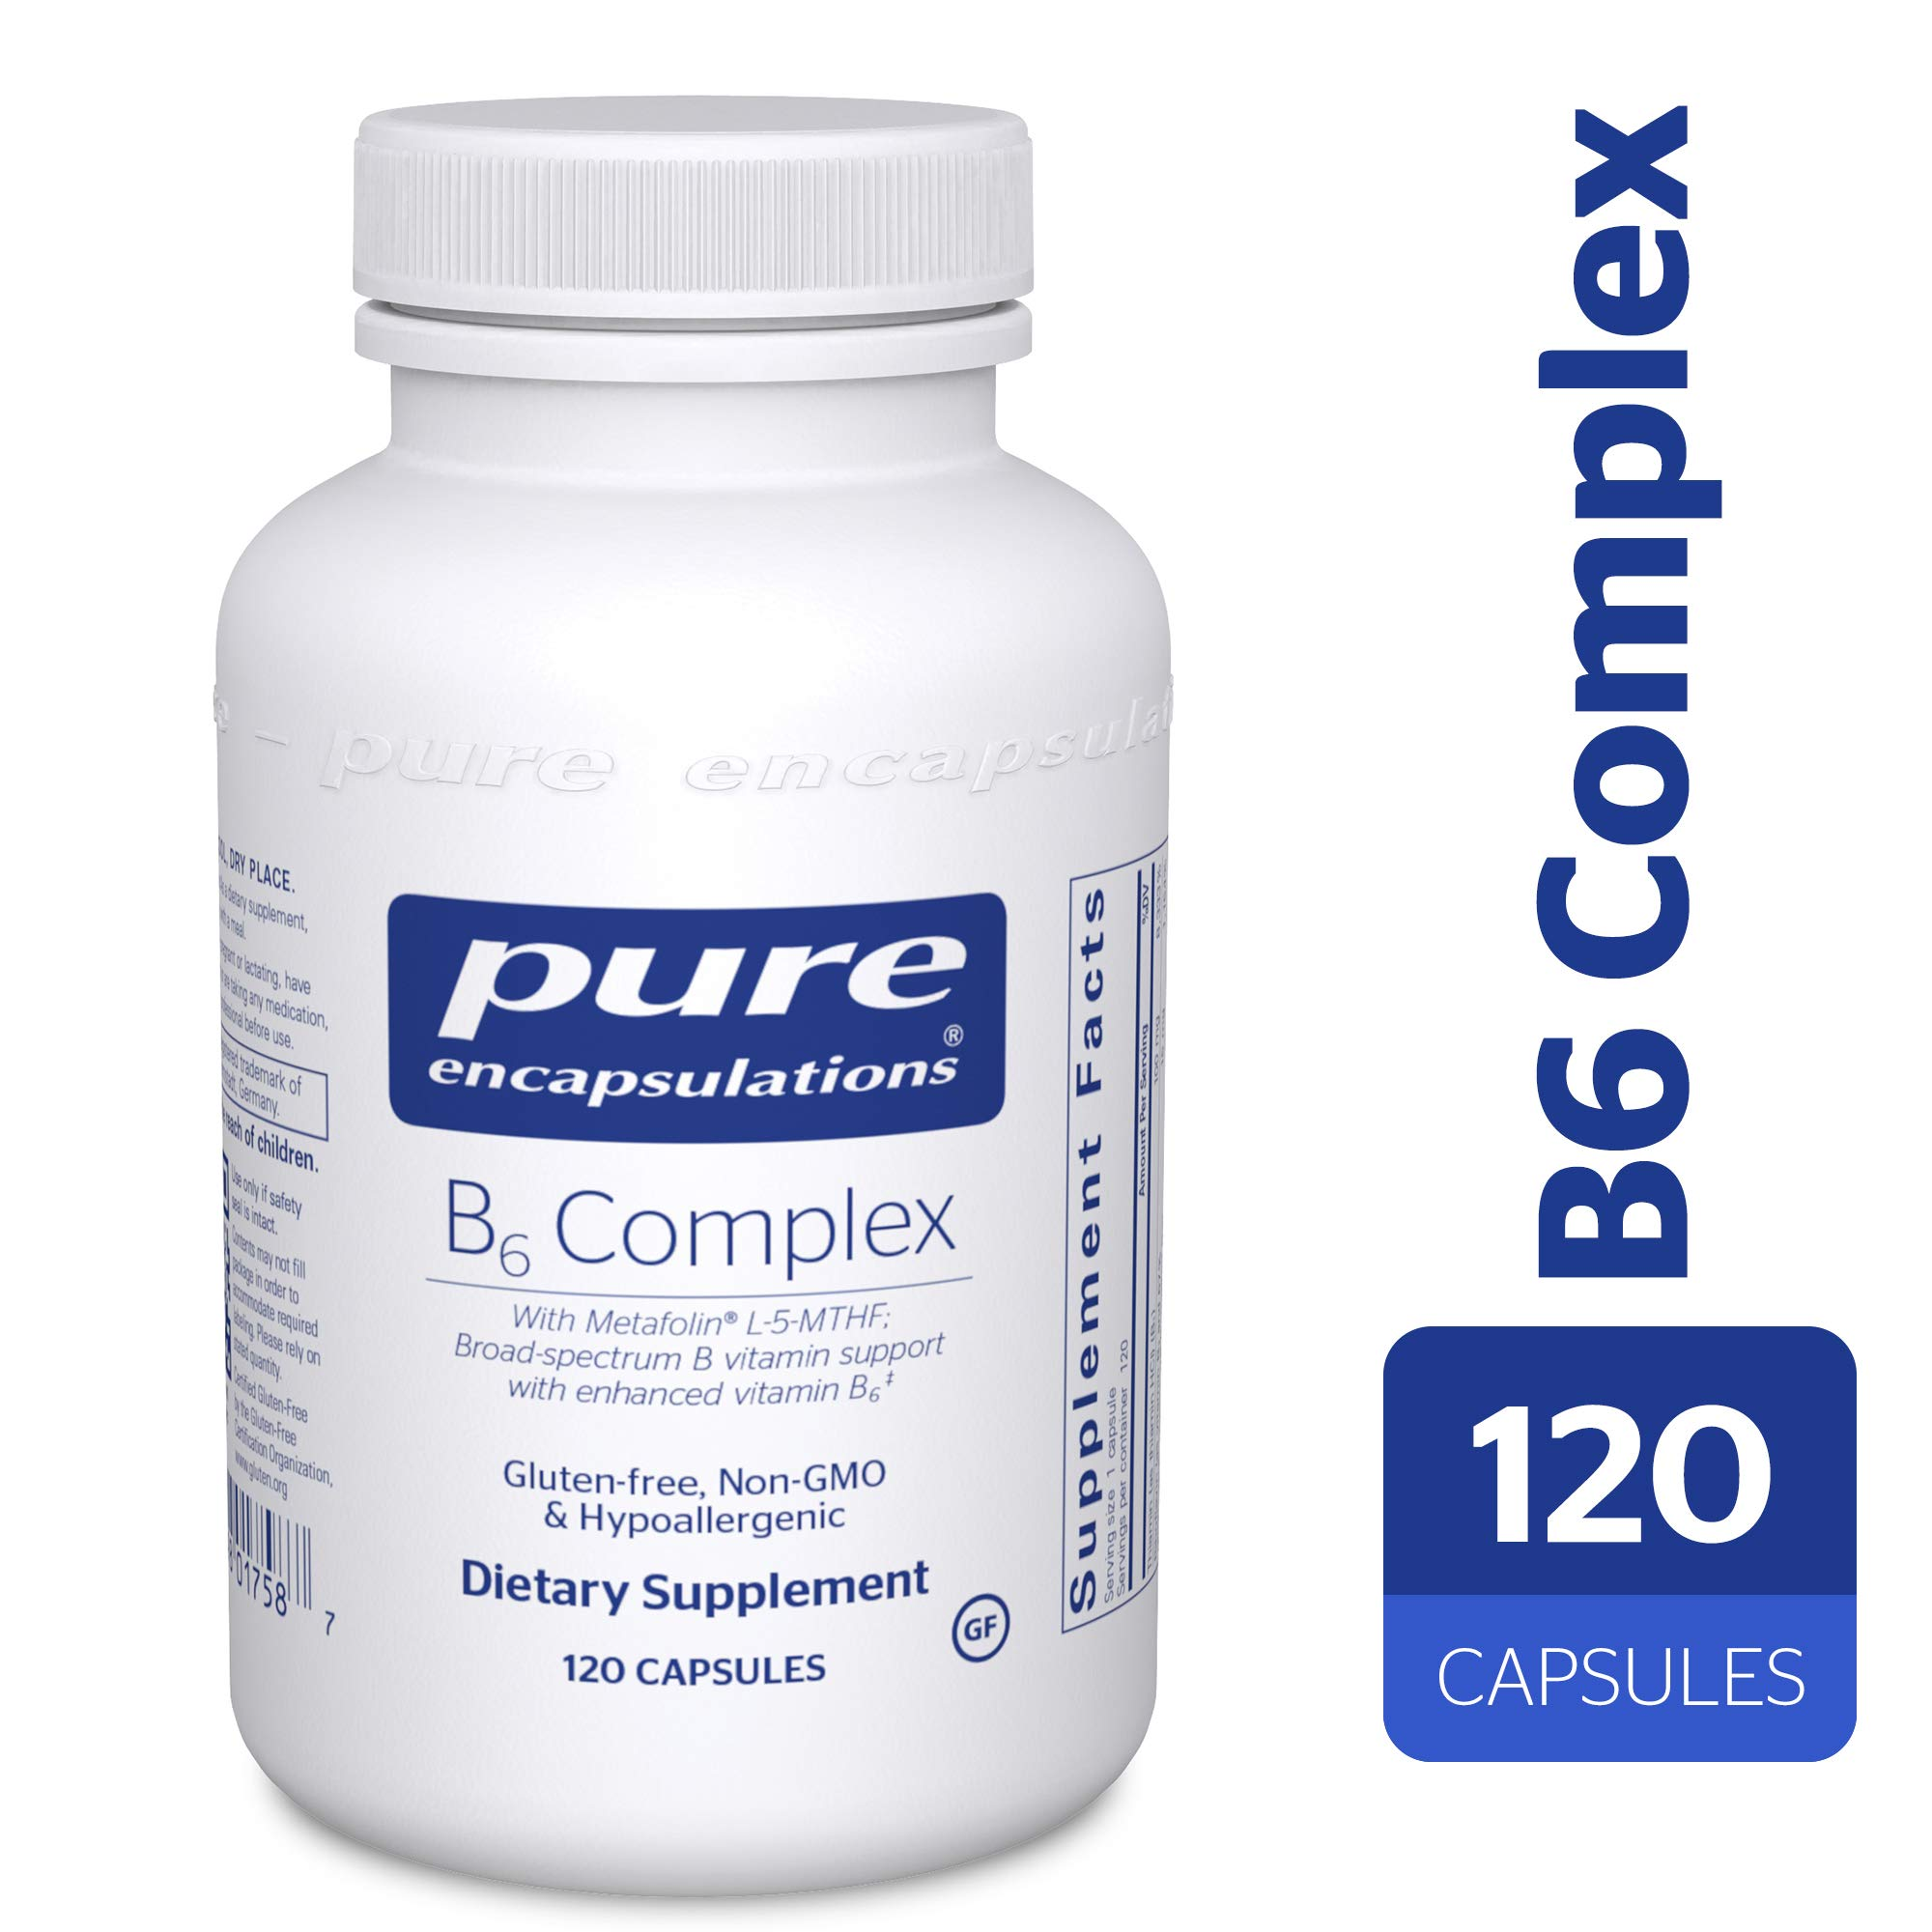 Pure Encapsulations - B6 Complex - Hypoallergenic Dietary Supplement with Metafolin L-5-MTHF - 120 Capsules by Pure Encapsulations